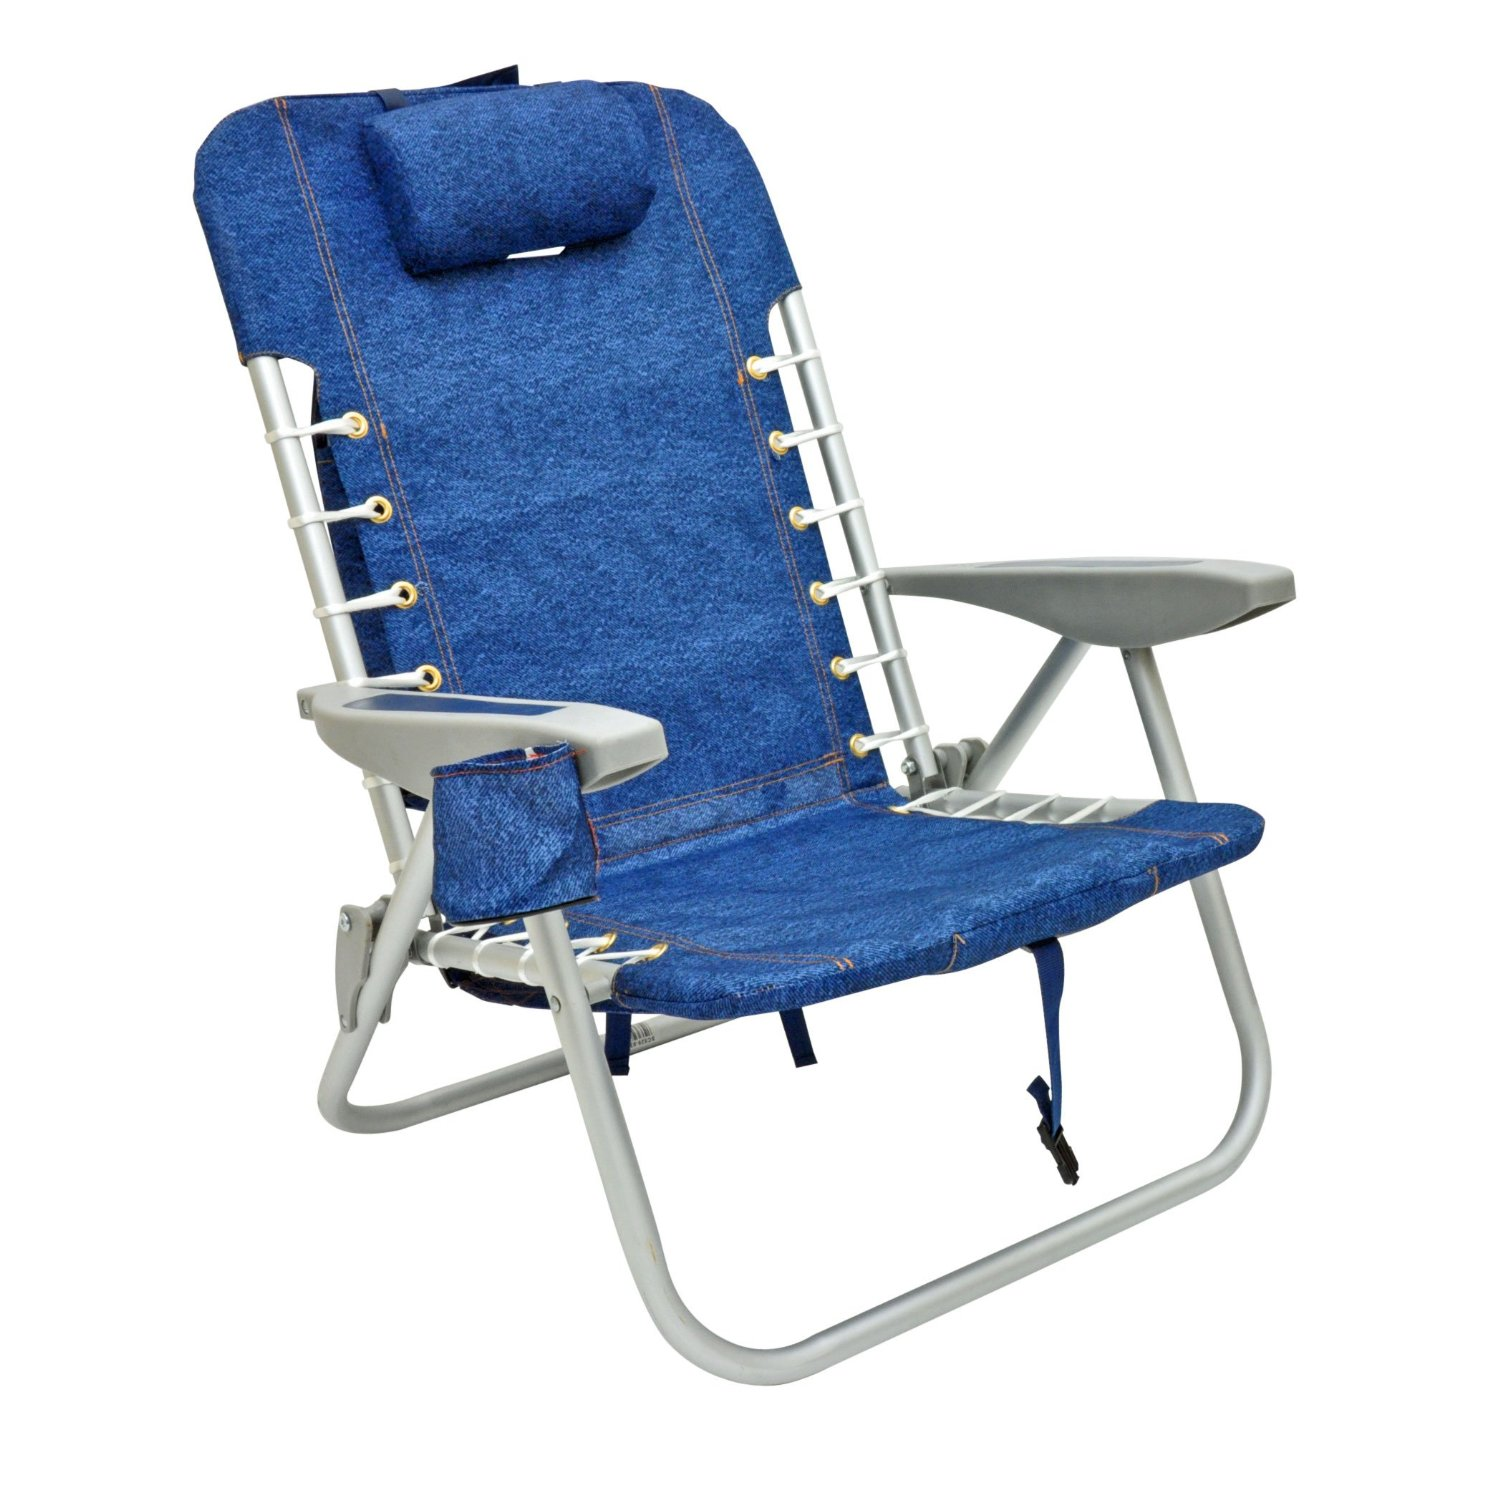 hide molded turquoise layer bealls chair beach florida rio thumbnailimg arms yyy chairs online src th